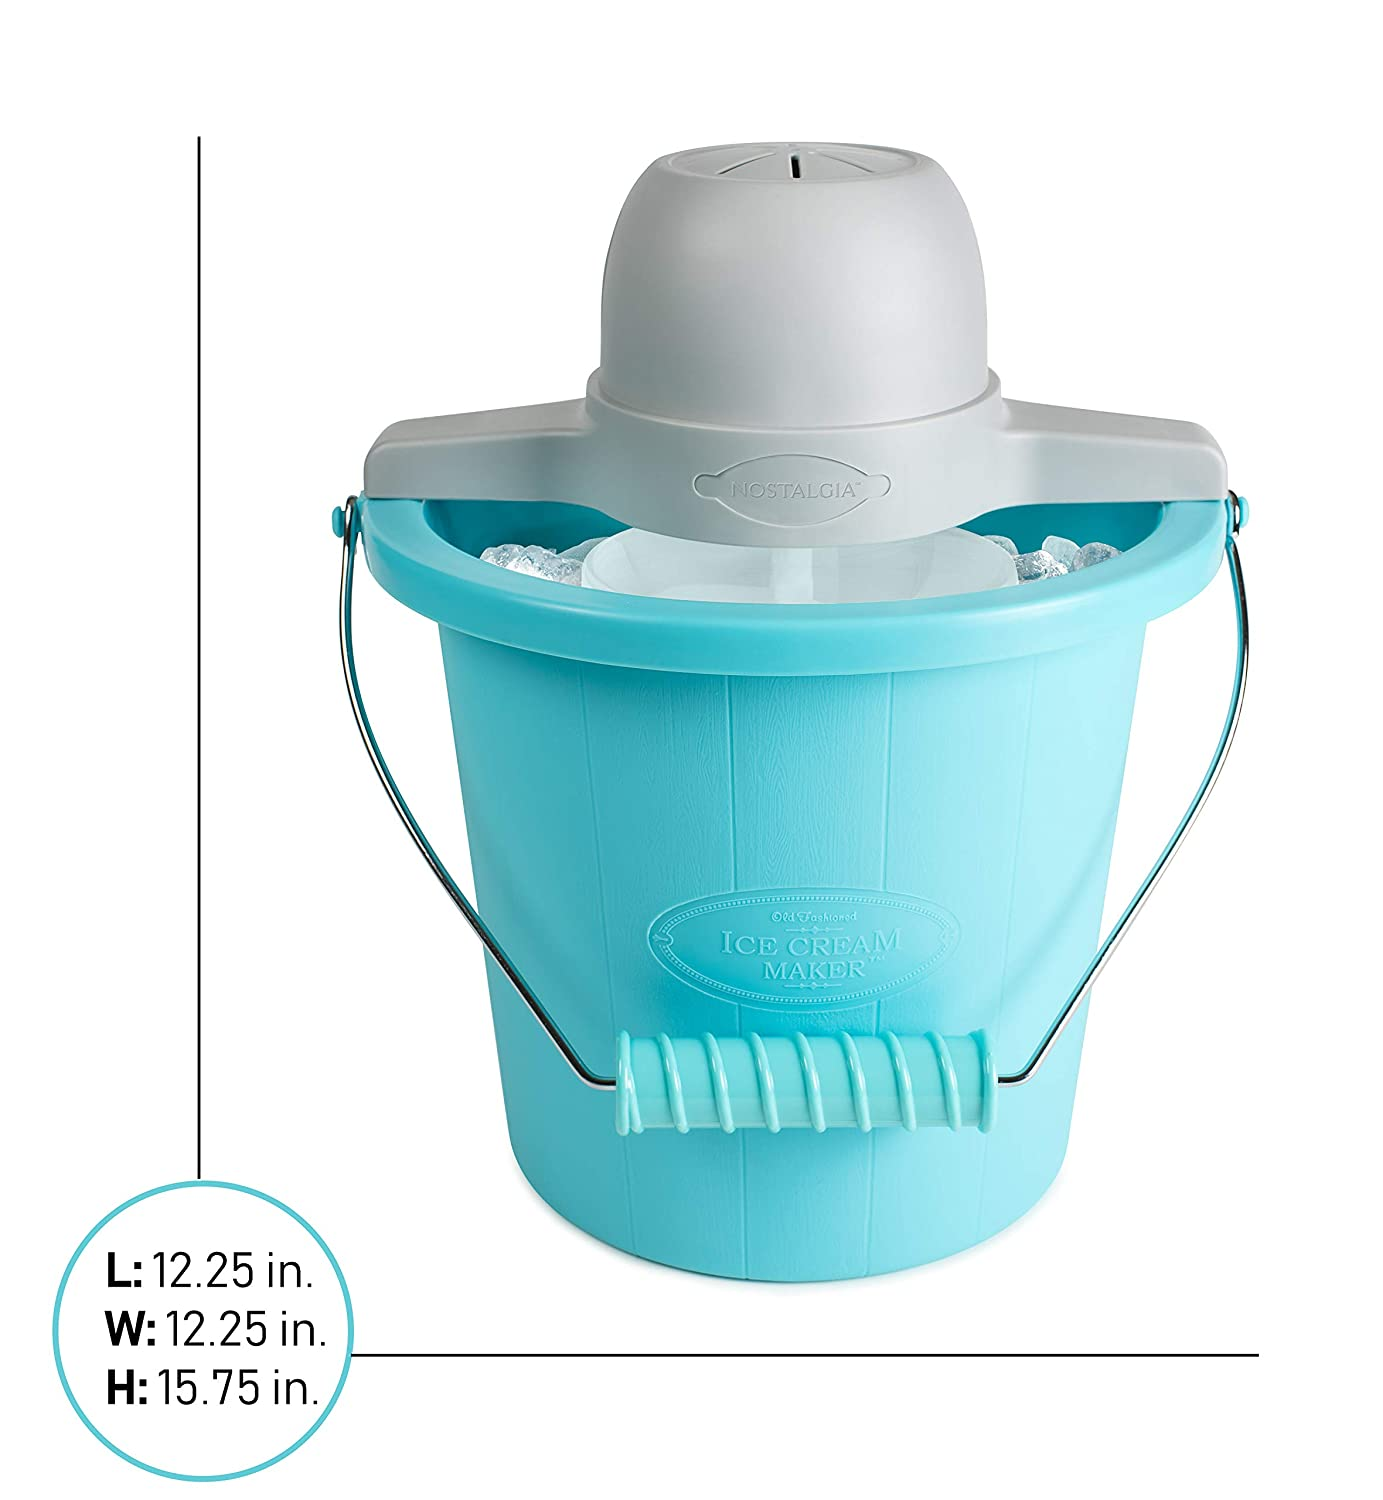 db8fcad7e636 Buy Nostalgia Electrics 4-Quart Electric Ice Cream Maker, Blue Online at  Low Prices in India - Amazon.in